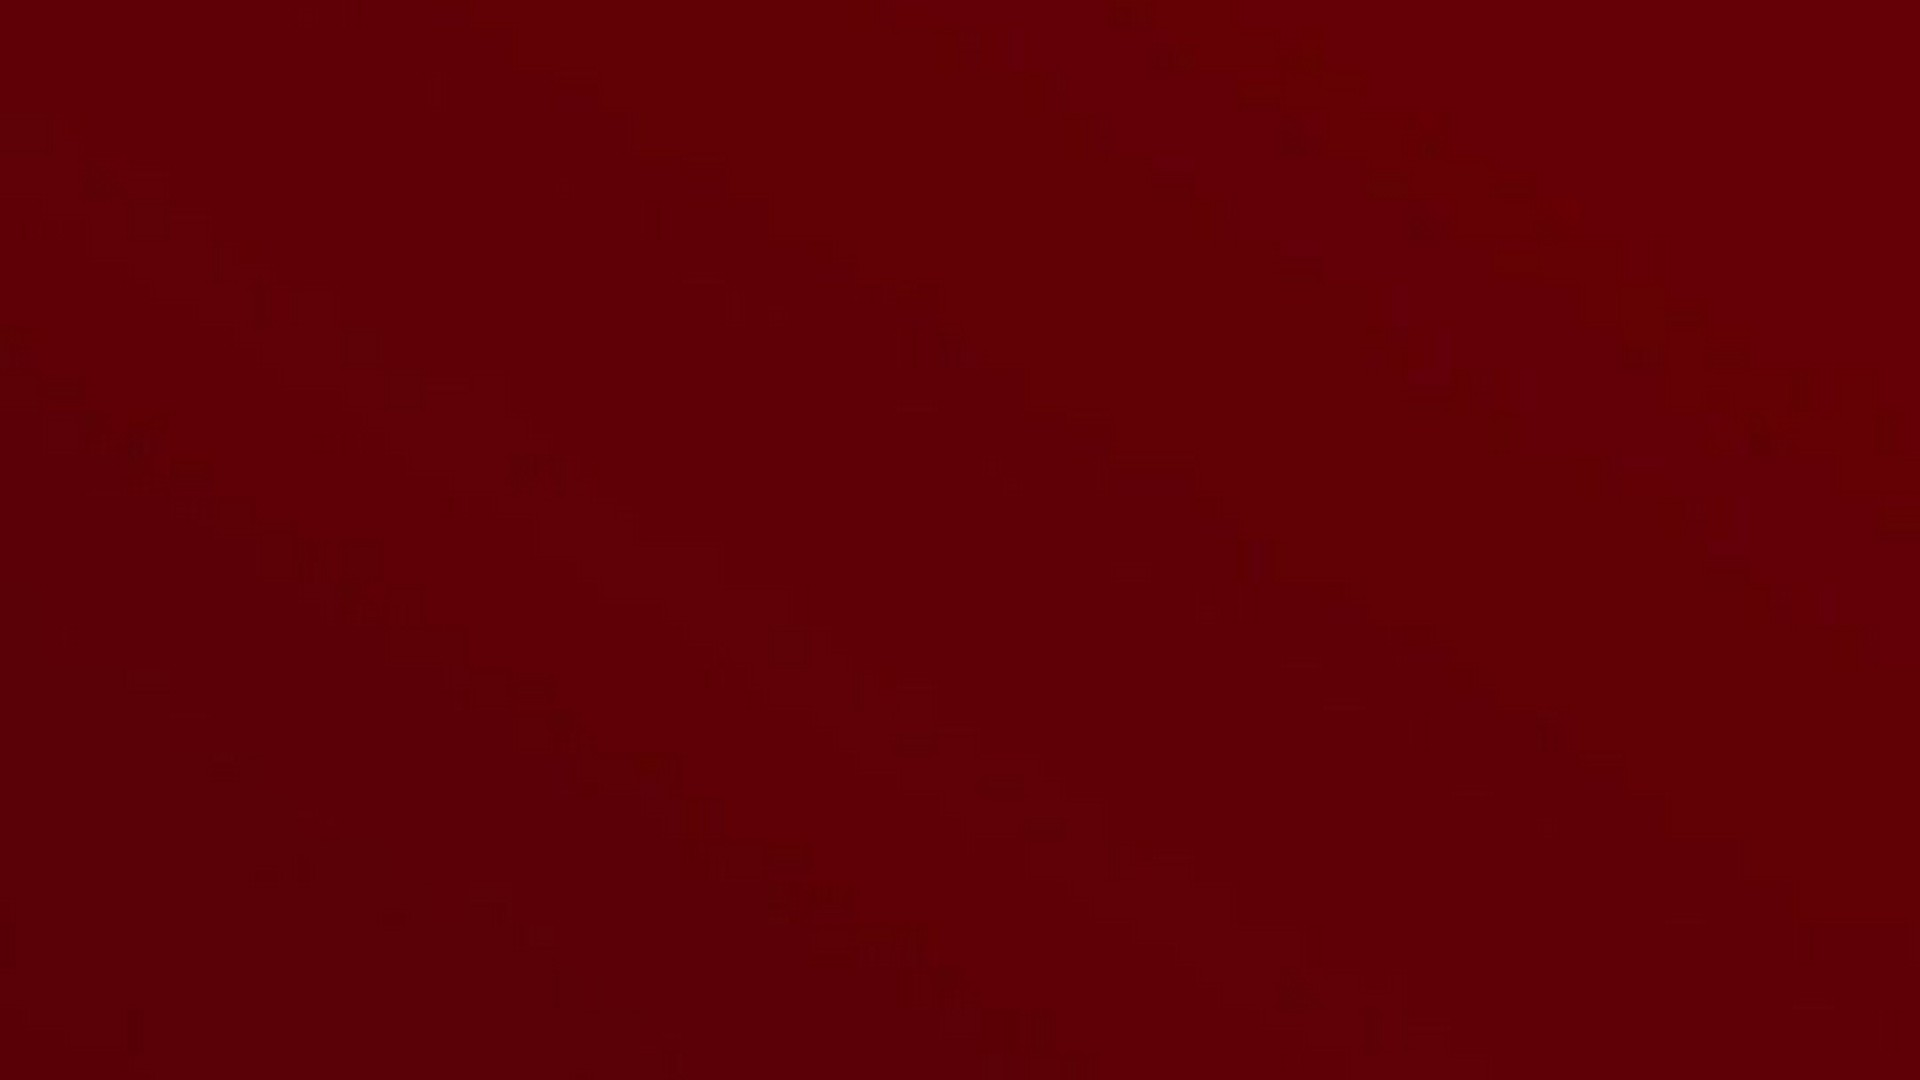 Best HD Red Aesthetic Wallpaper With high-resolution 1920X1080 pixel. You can use and set as background for your Mac Desktop Background, Windows Screensavers, iPhone Wallpapers, Tablet or Android Lock screen and another Smartphone